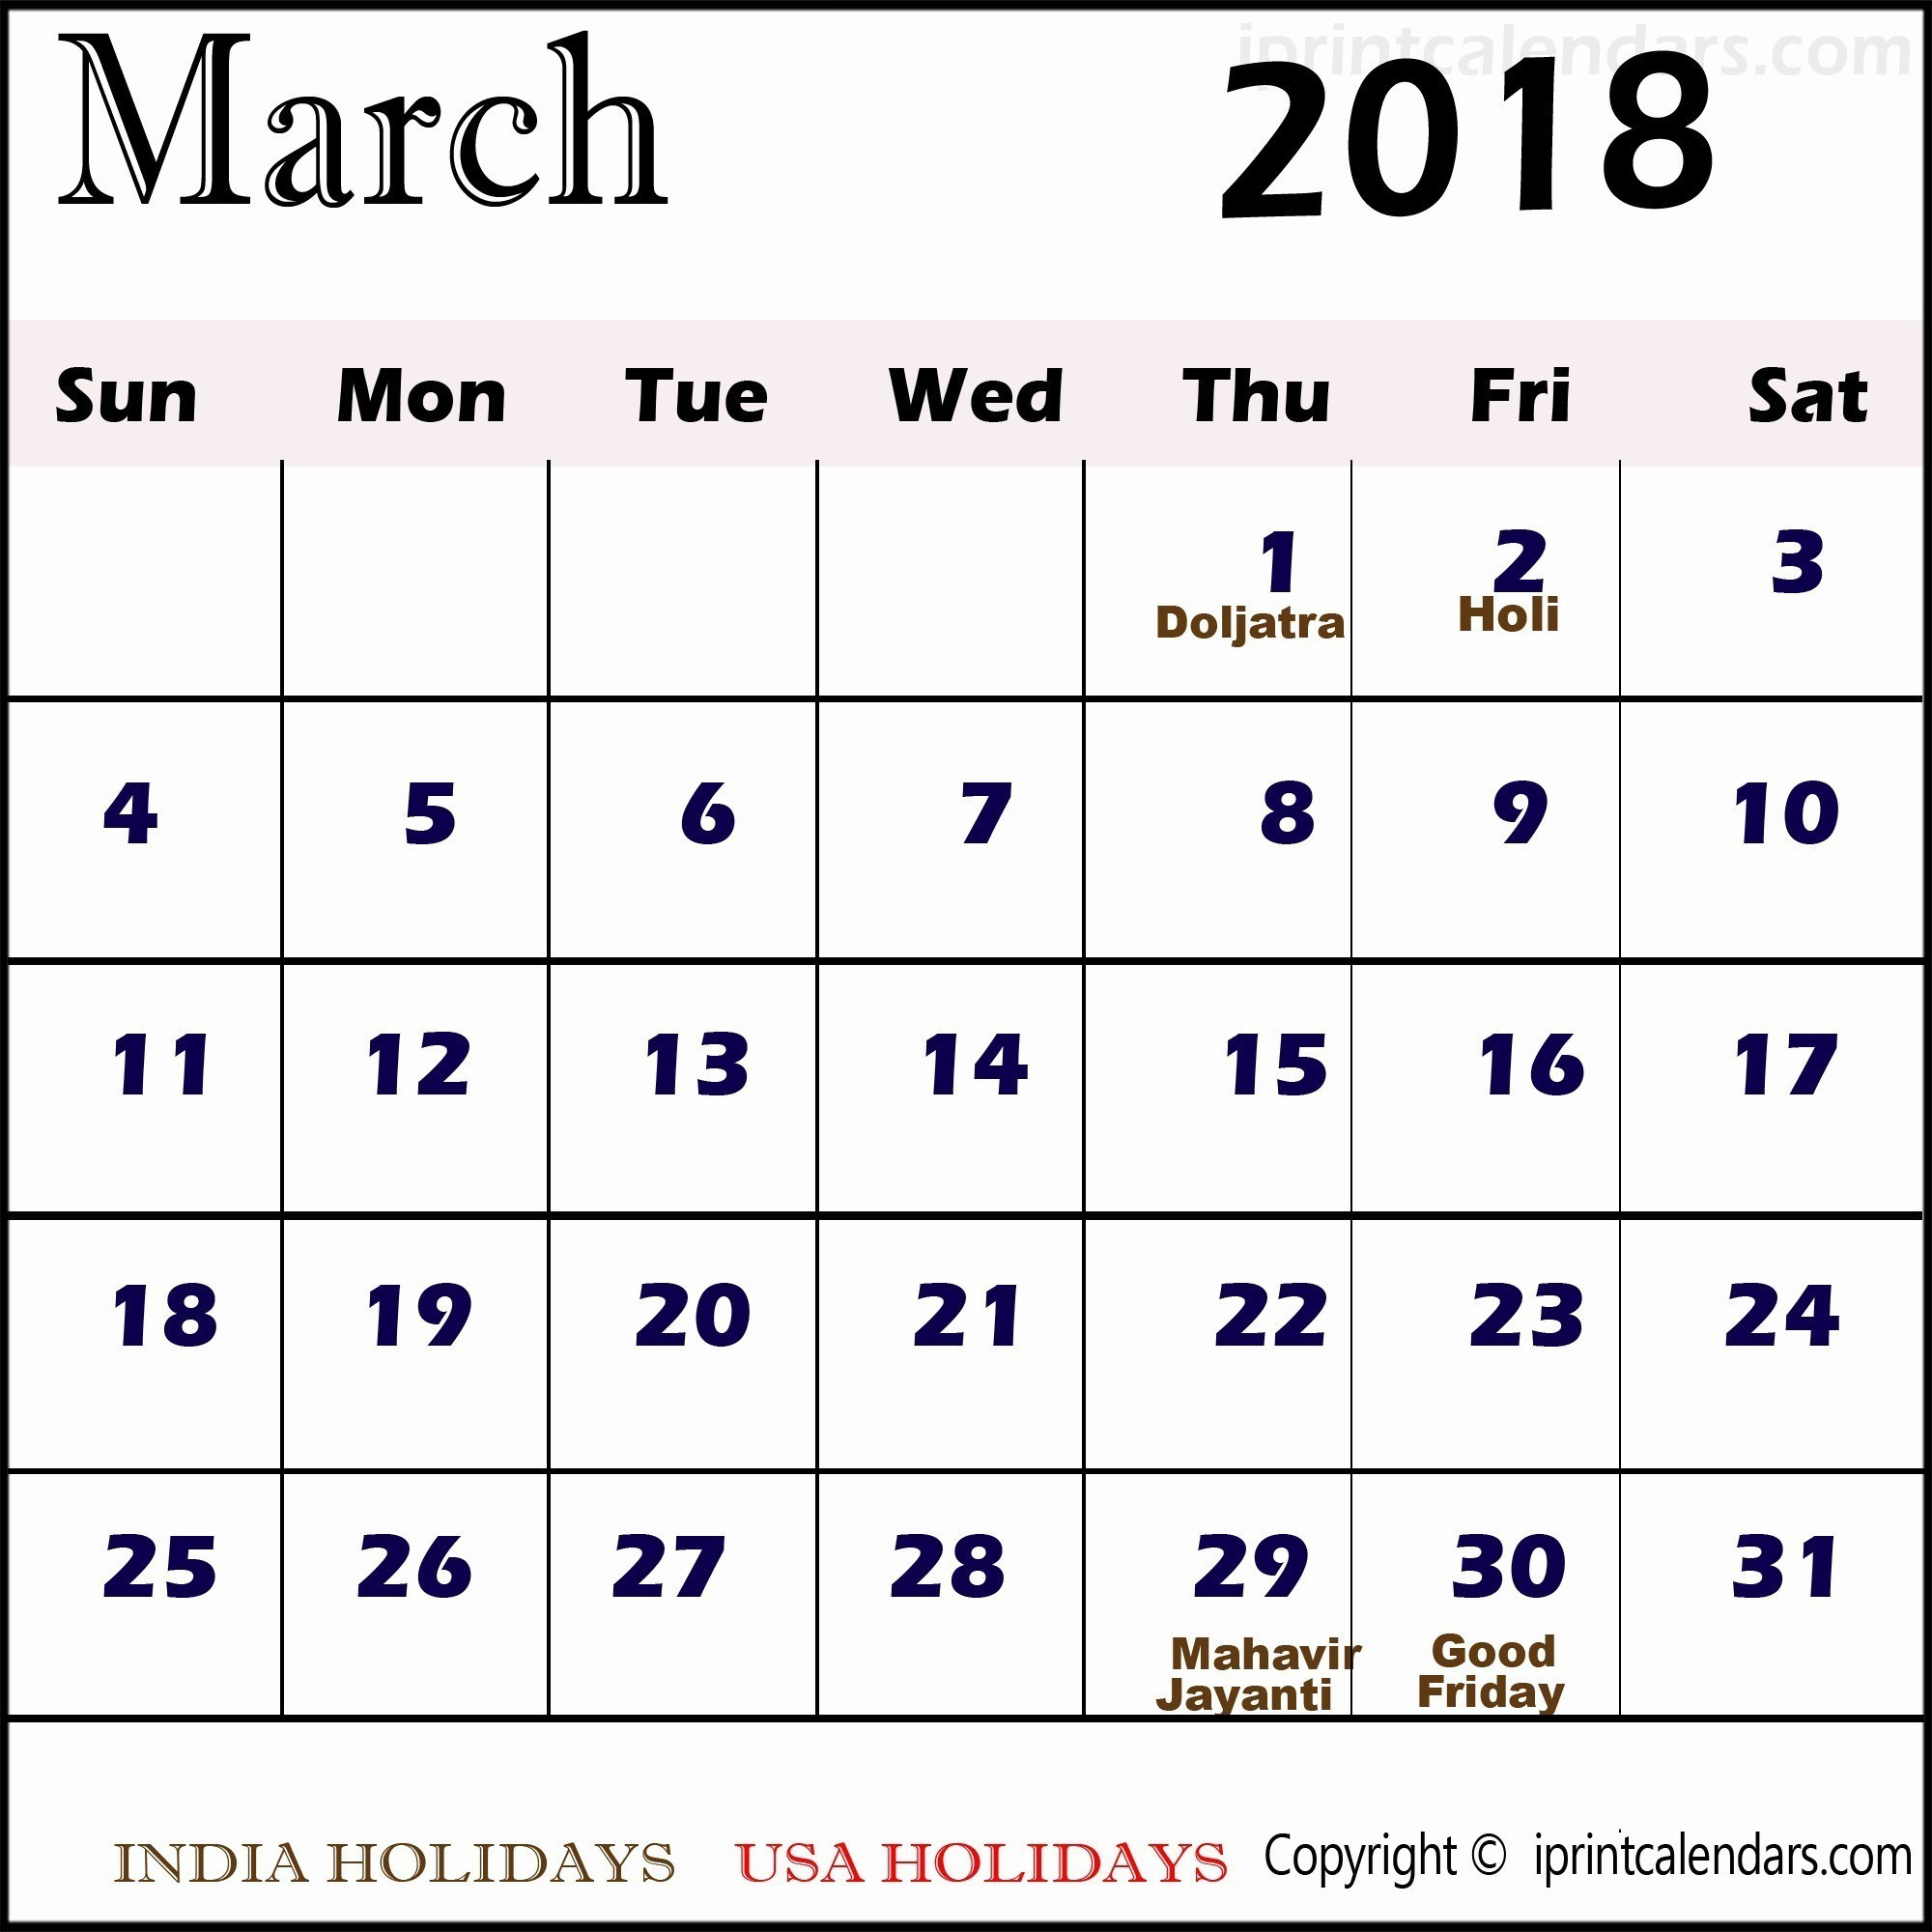 March Calendar Blank 2019 Más Arriba-a-fecha 2019 Calendar Holidays Of March Calendar Blank 2019 Más Caliente 2019 March for Life Info